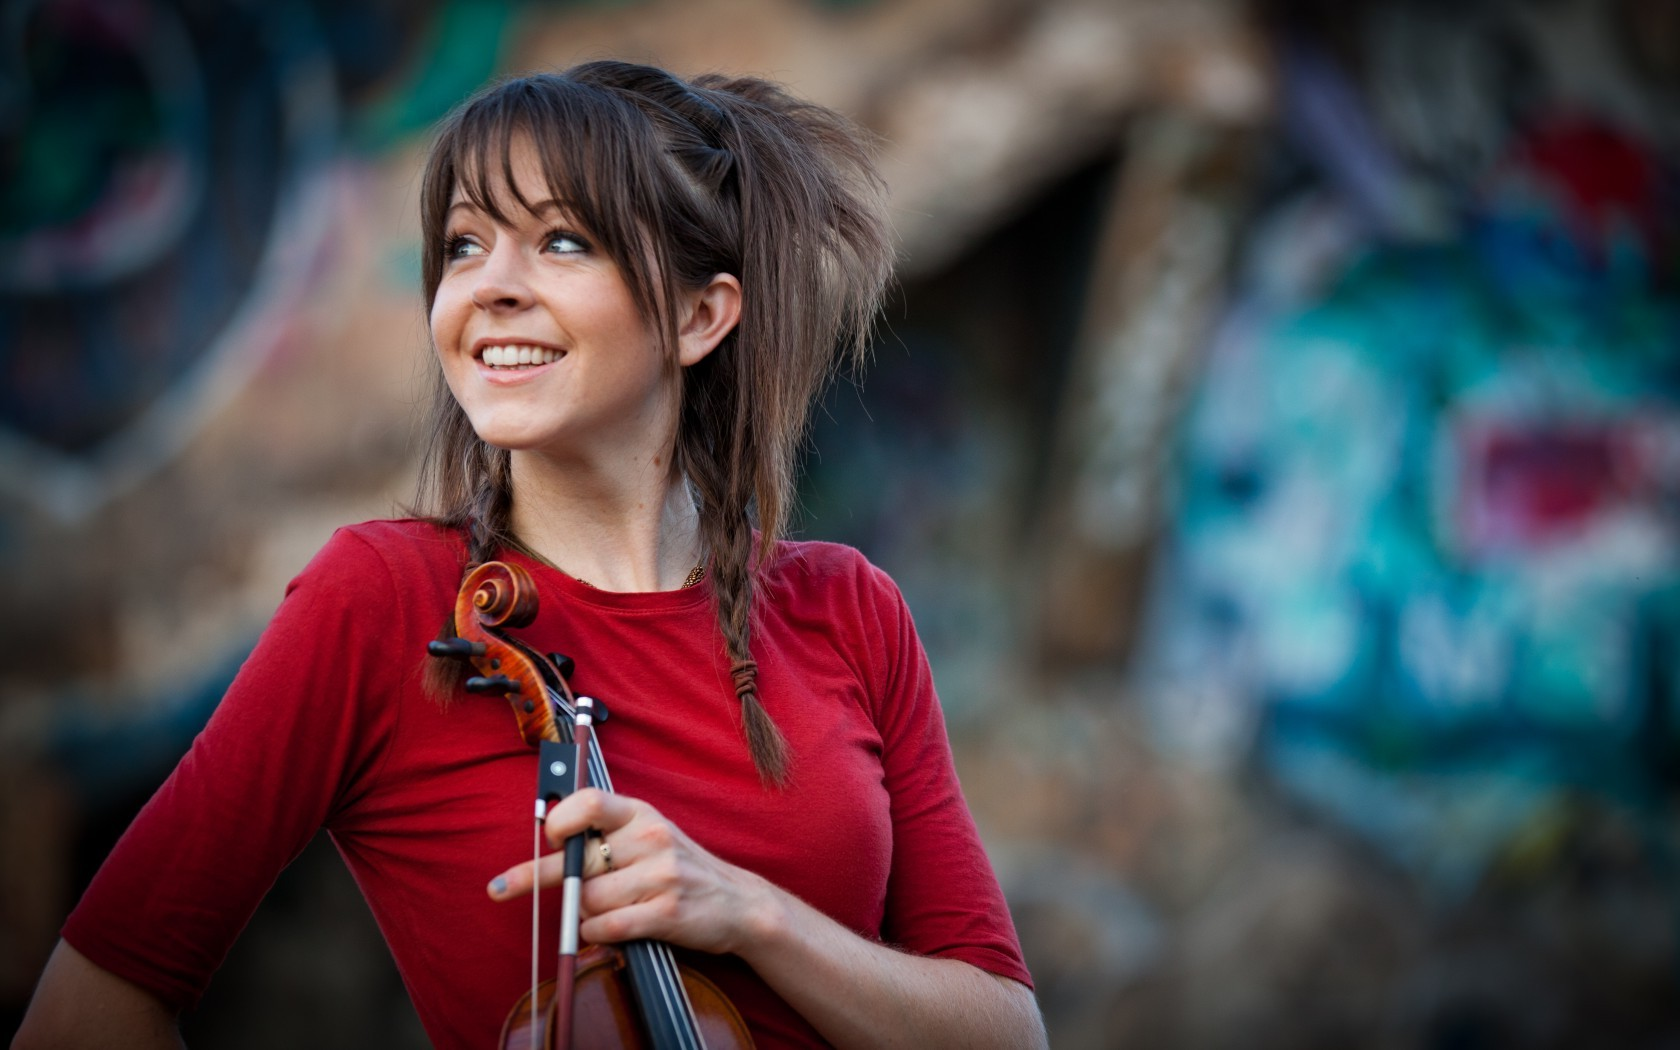 http://avante.biz/wp-content/uploads/Lindsey-Stirling-Wallpaper/Lindsey-Stirling-Wallpaper-049.jpg